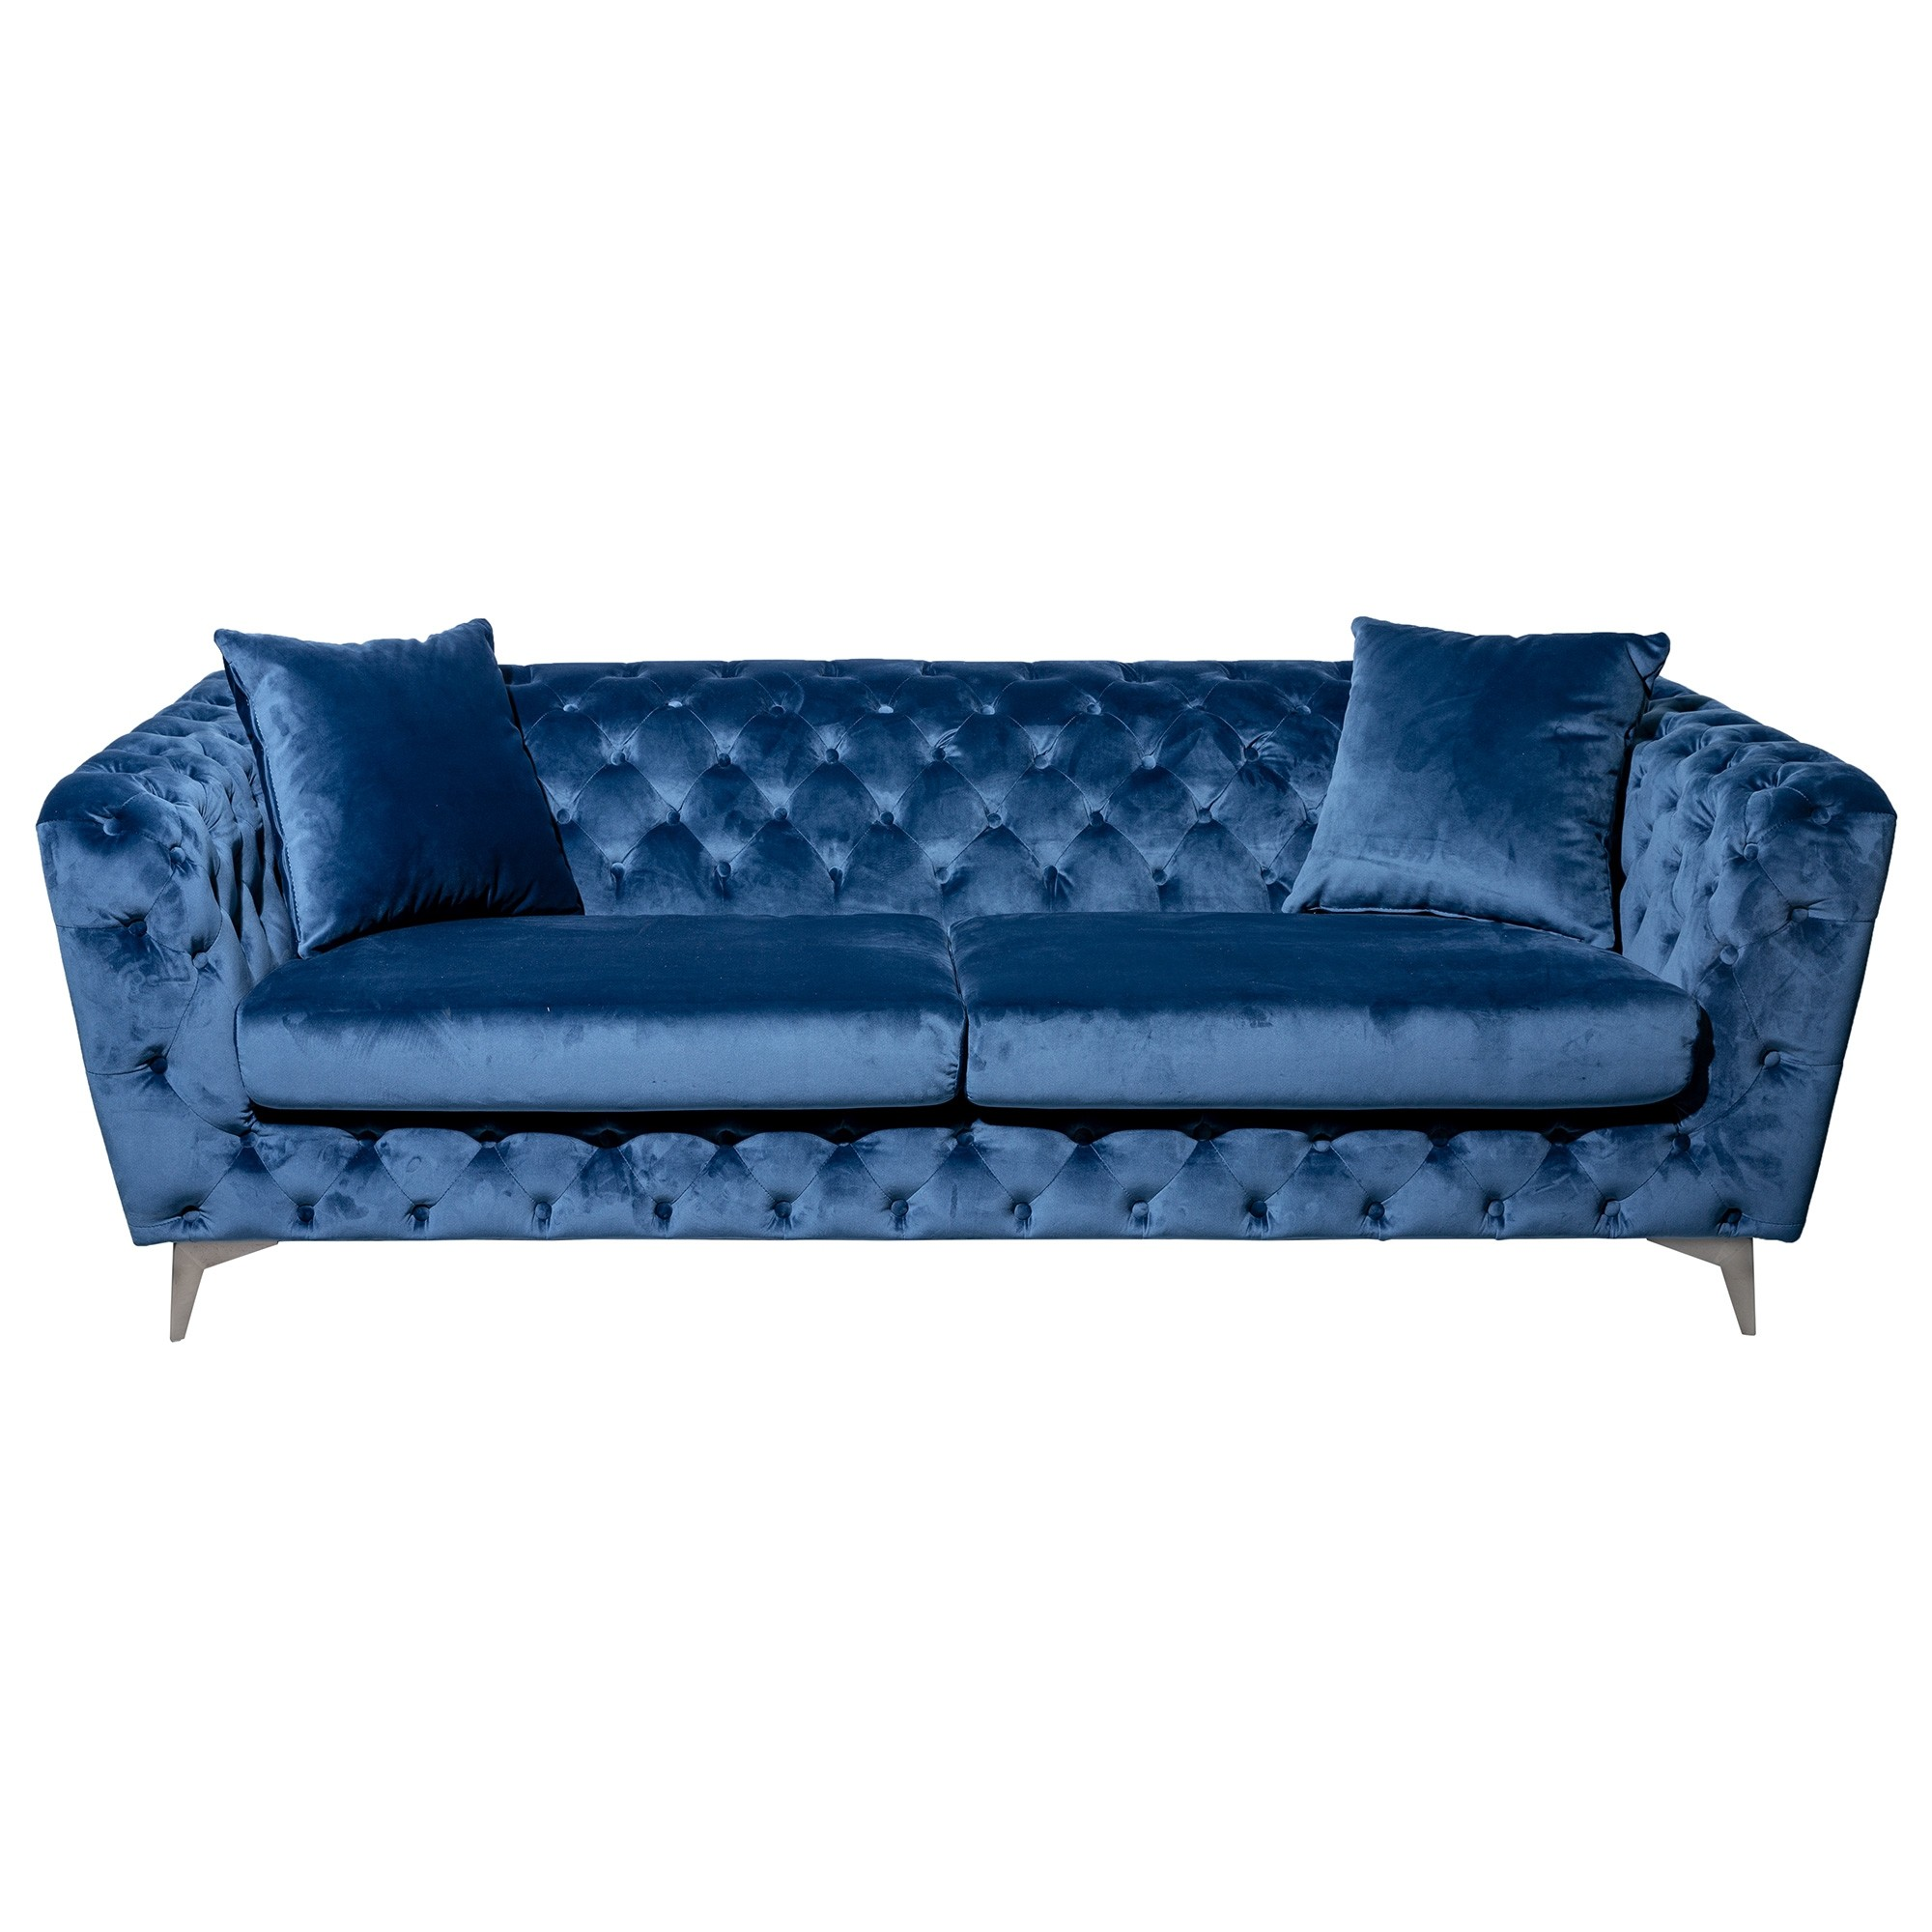 Potton Tufted Fabric Sofa, 3 Seater, Blue